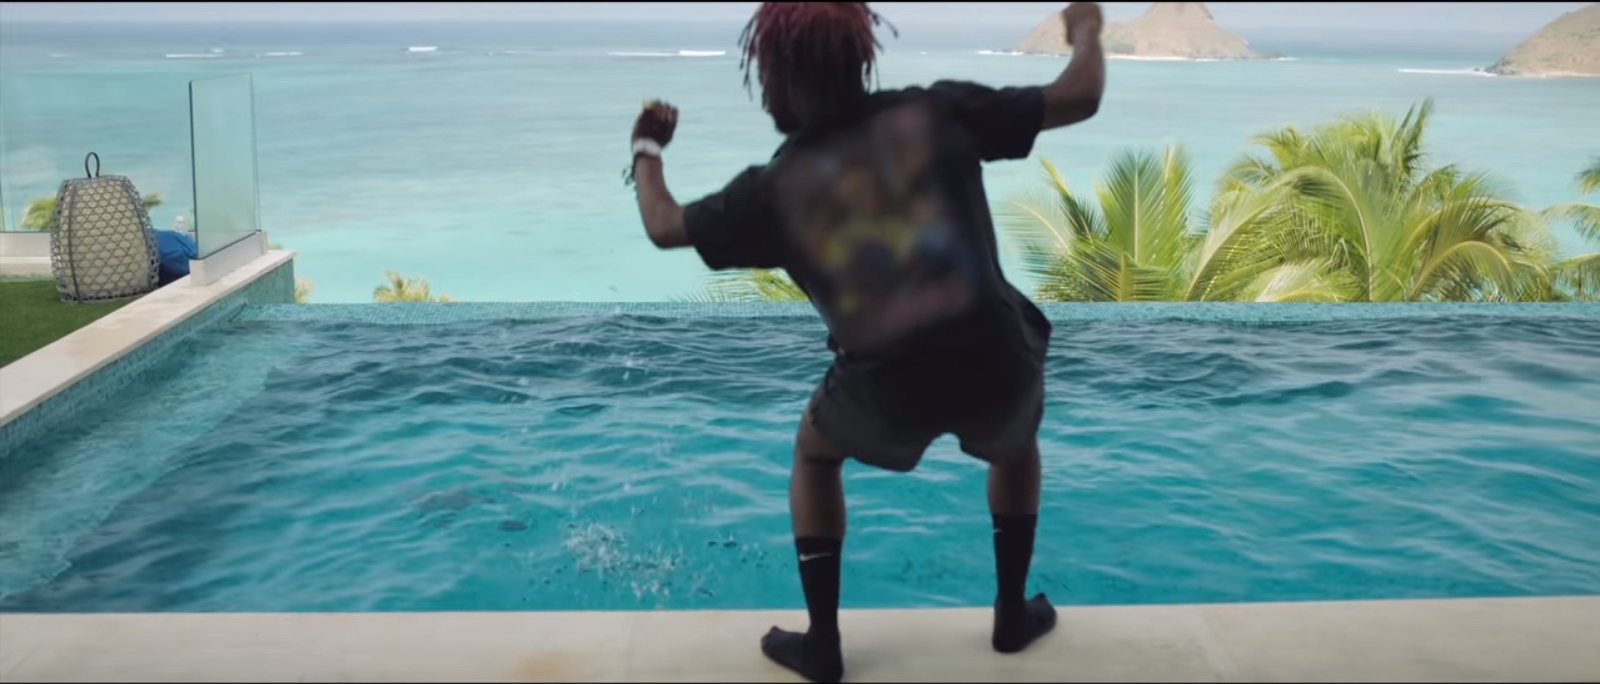 Nike Socks – Lil Uzi Vert – Do What I Want - Official Music Video Product Placement